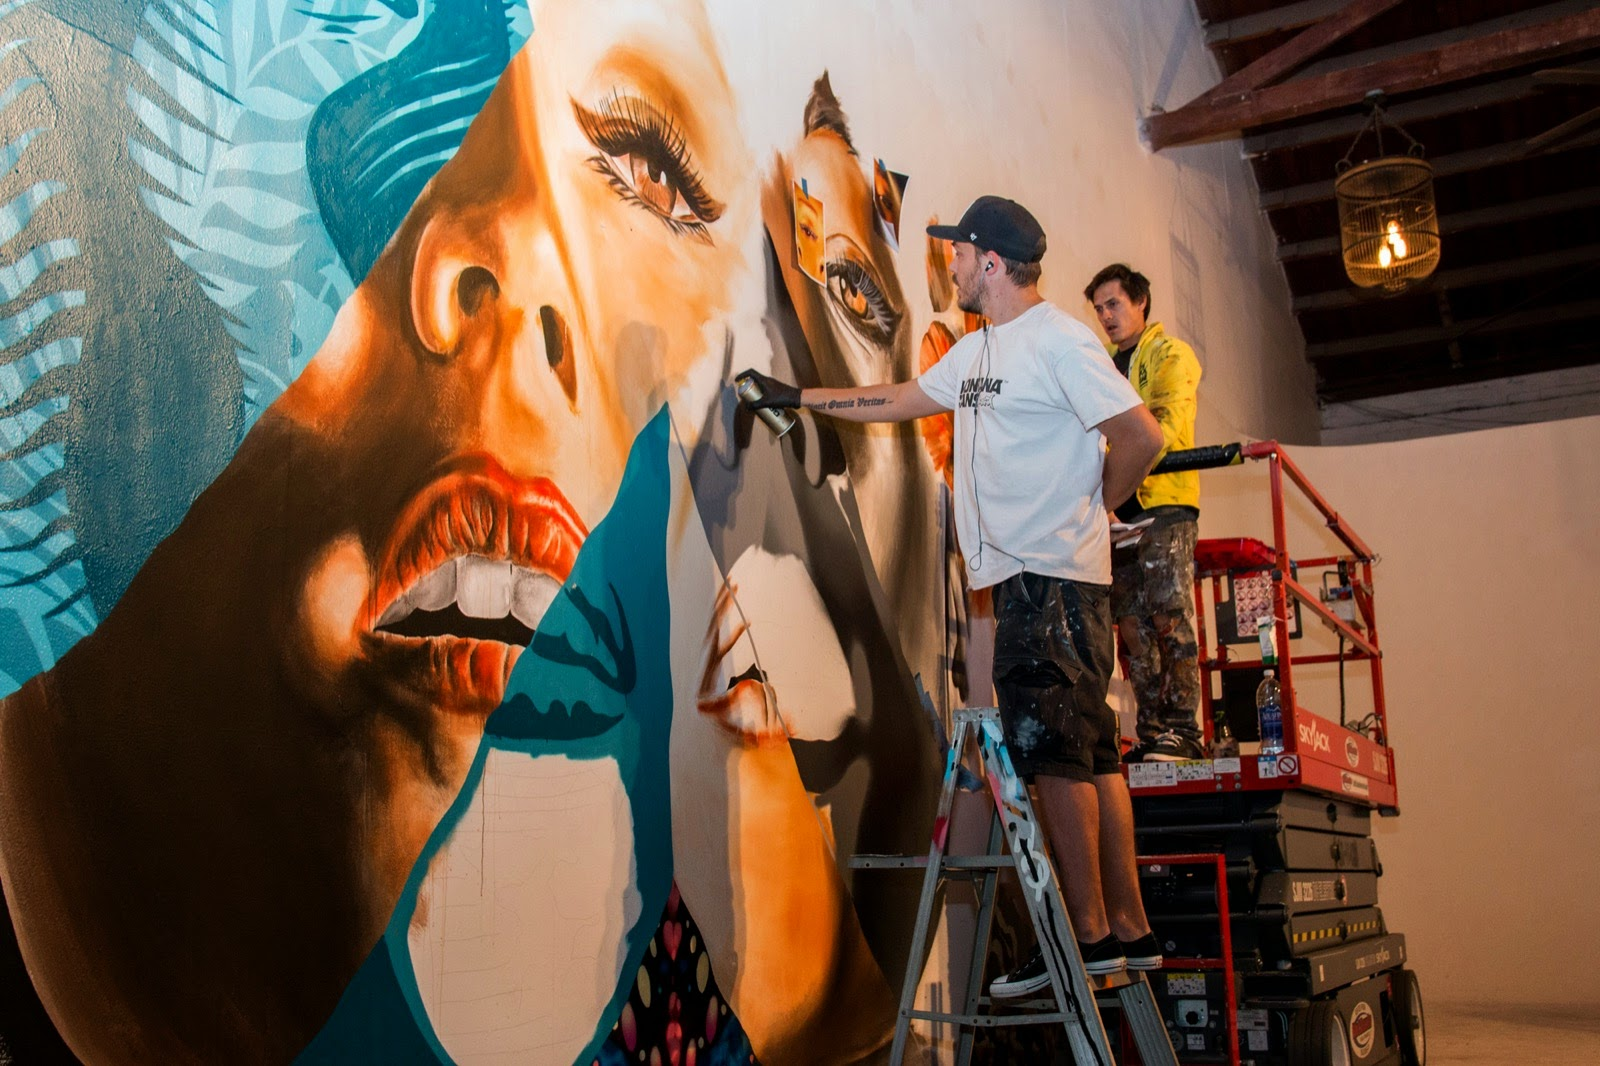 Kamea Hadar and Tristan Eaton uncover a new indoor collaboration in Los Angeles, USA (10)